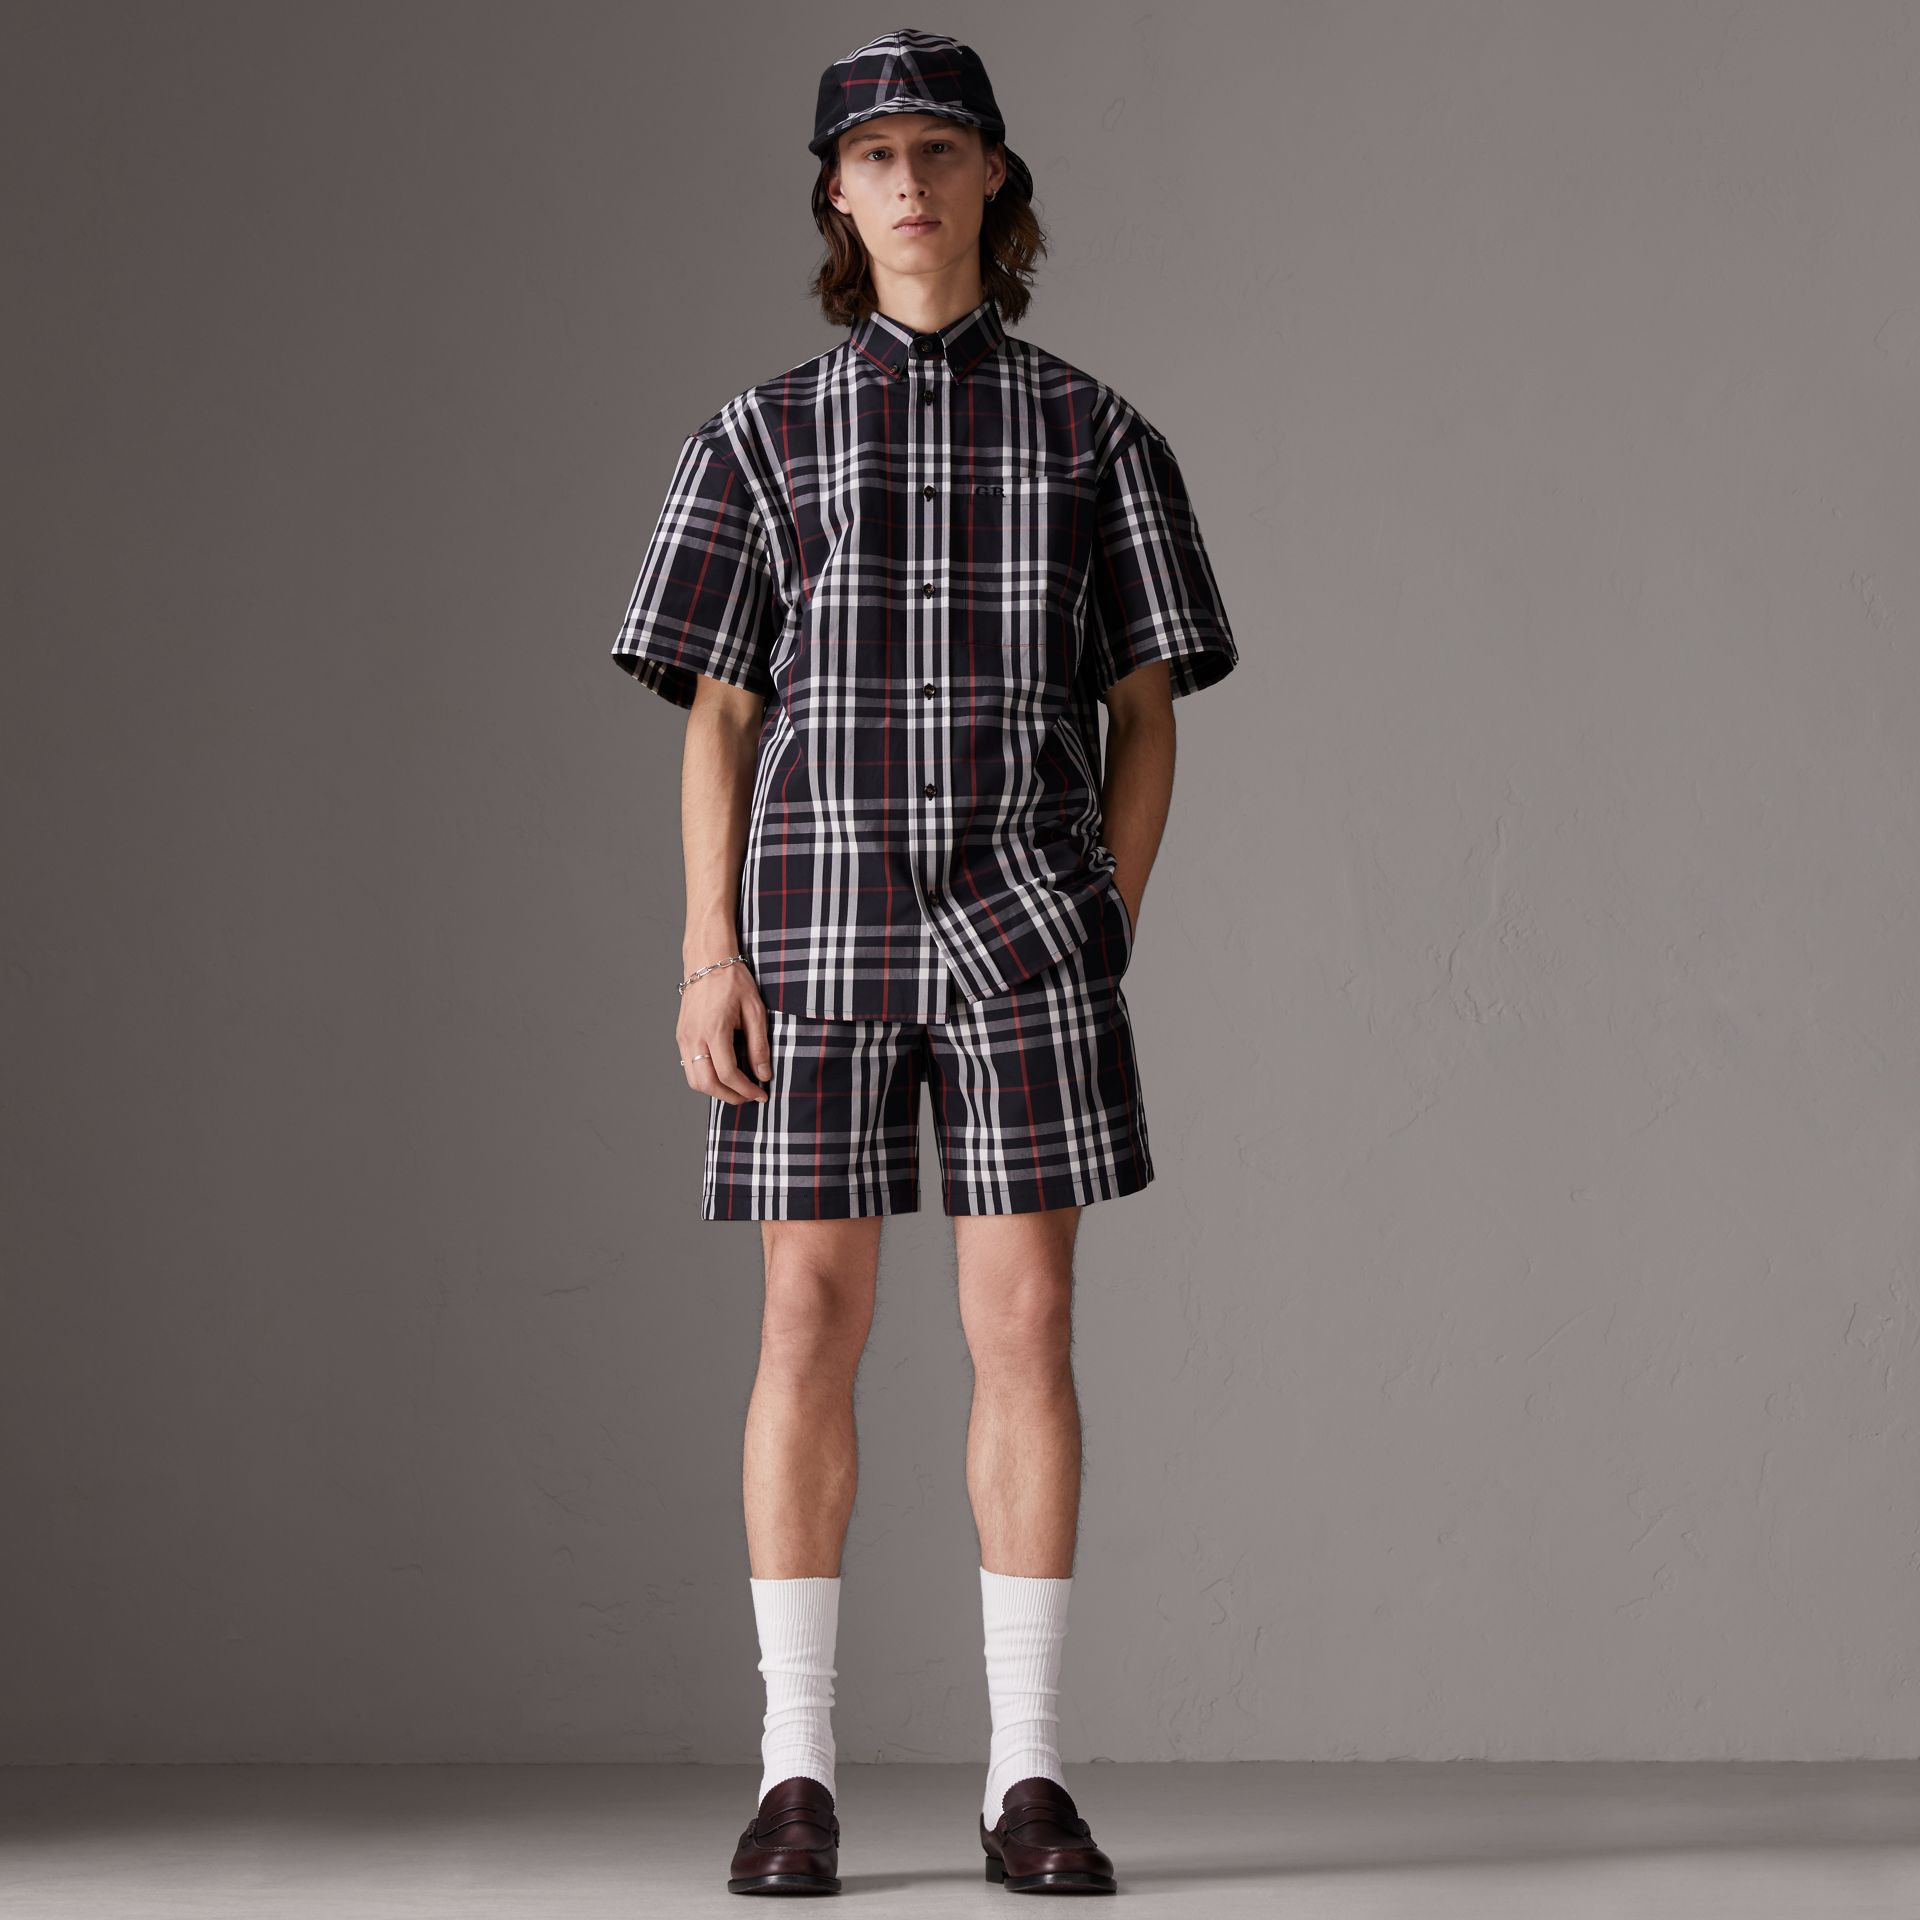 Gosha x Burberry Short-sleeve Check Shirt in Navy | Burberry - gallery image 2